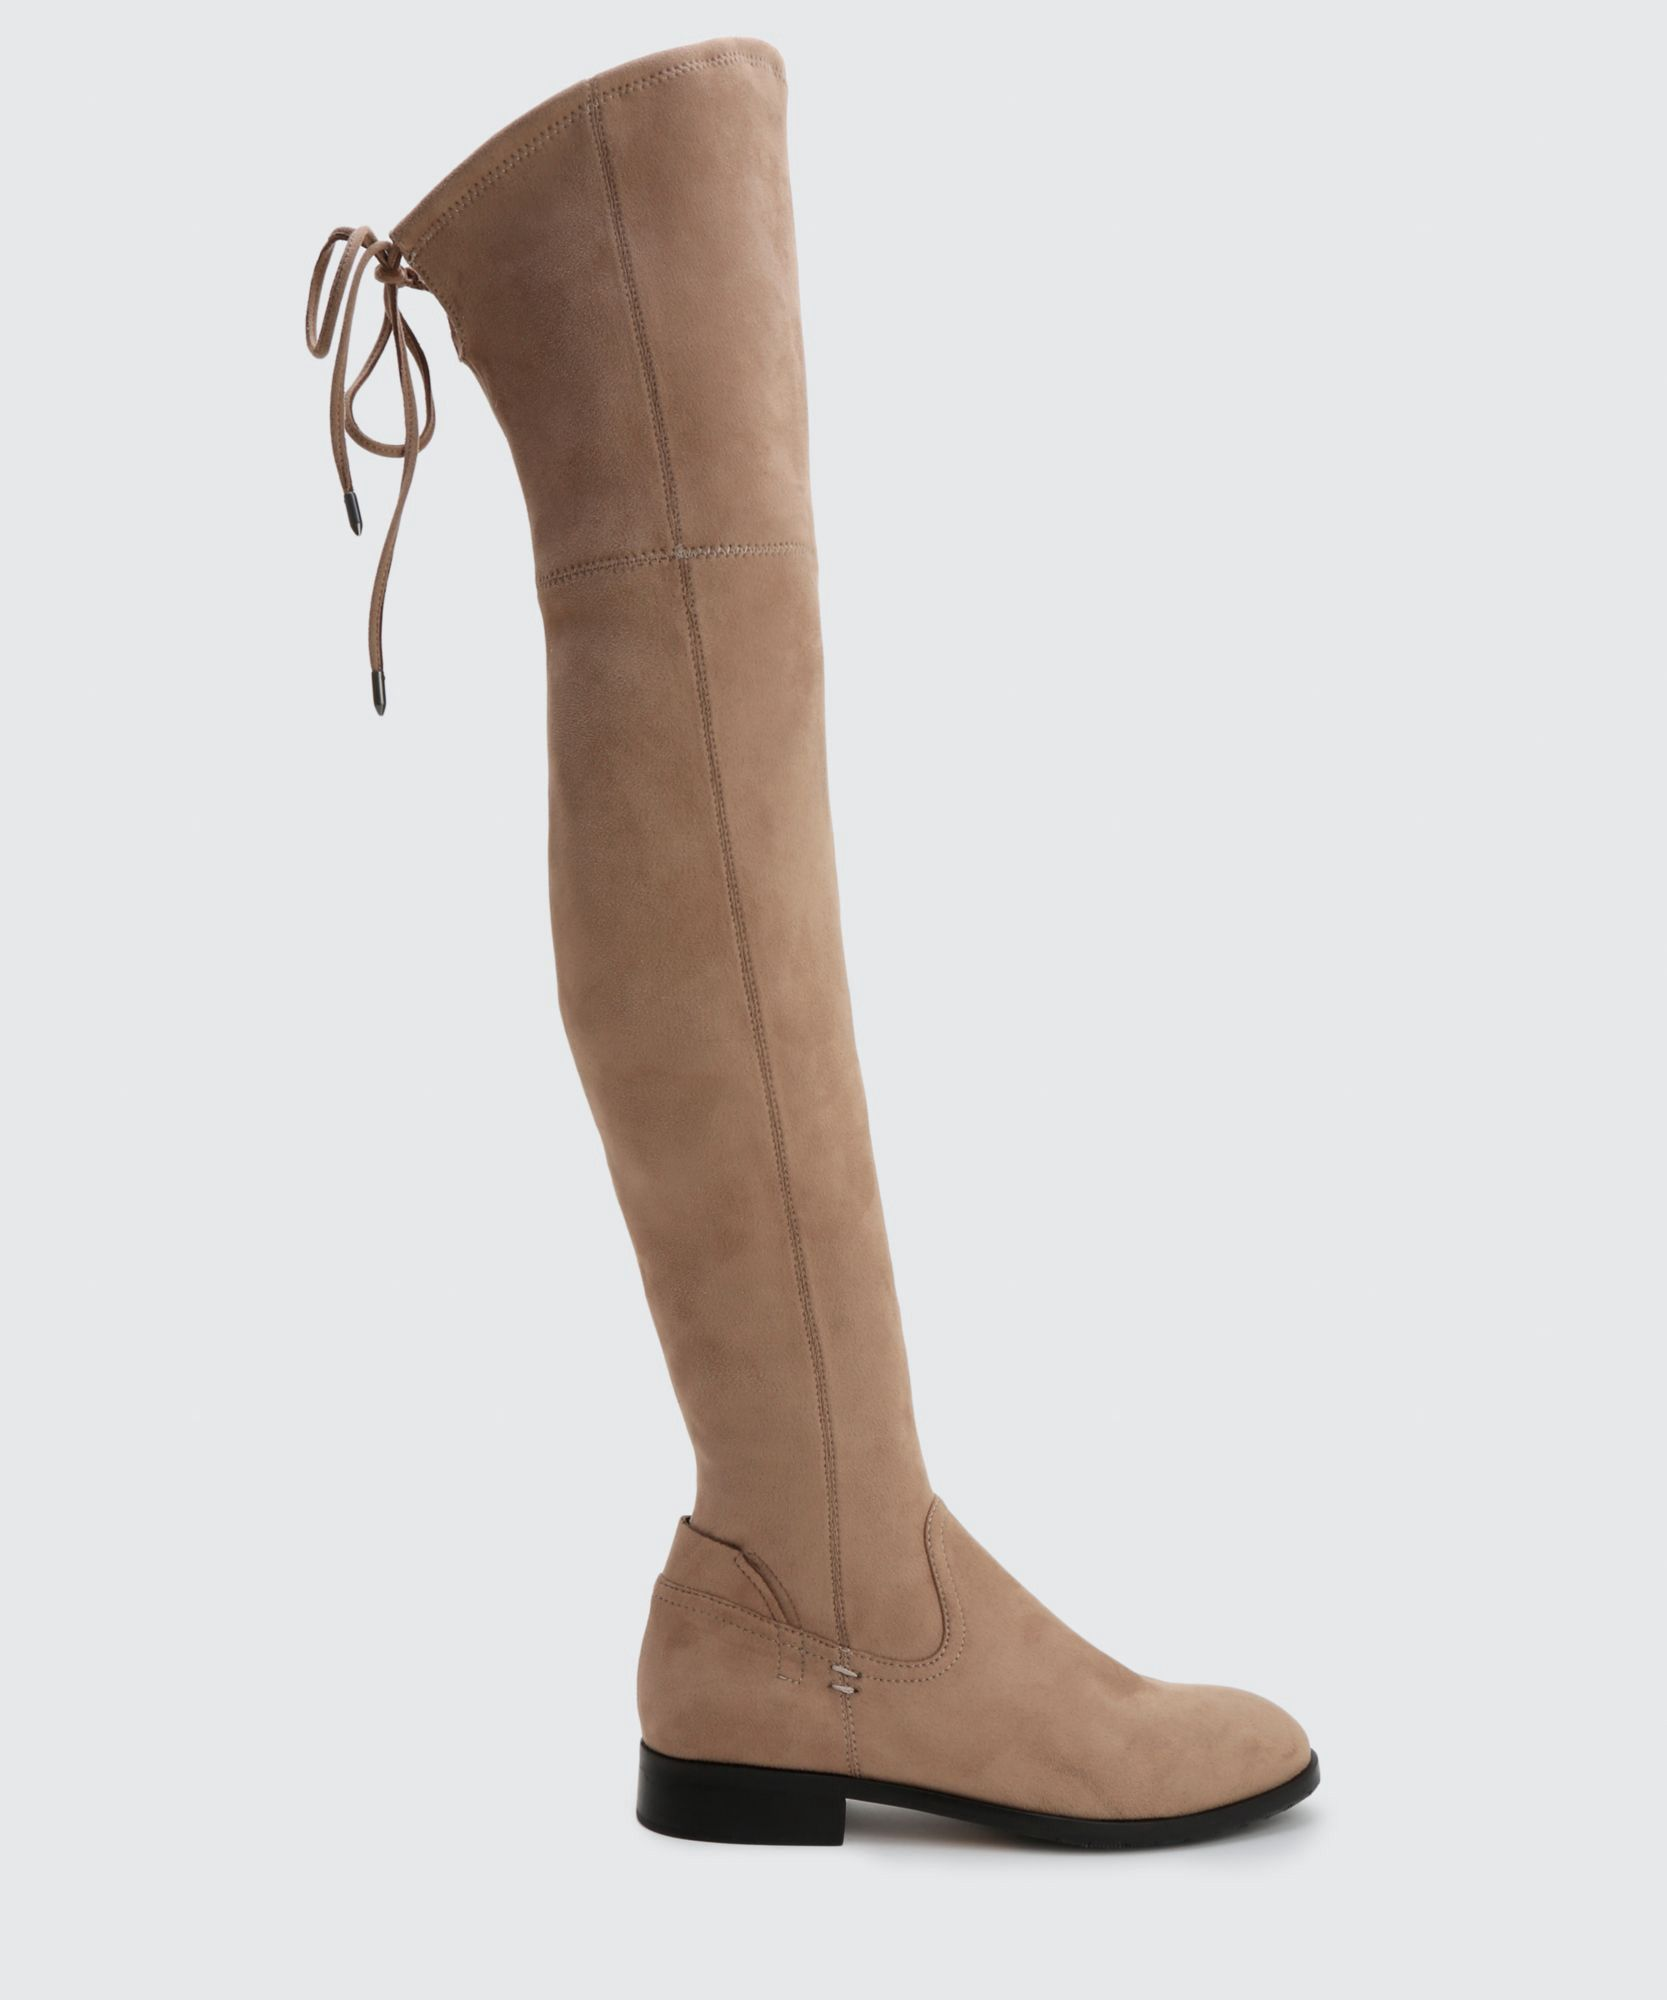 3bf19b1d78a DOLCE VITA NEELY OTK BOOTS.  dolcevita  shoes